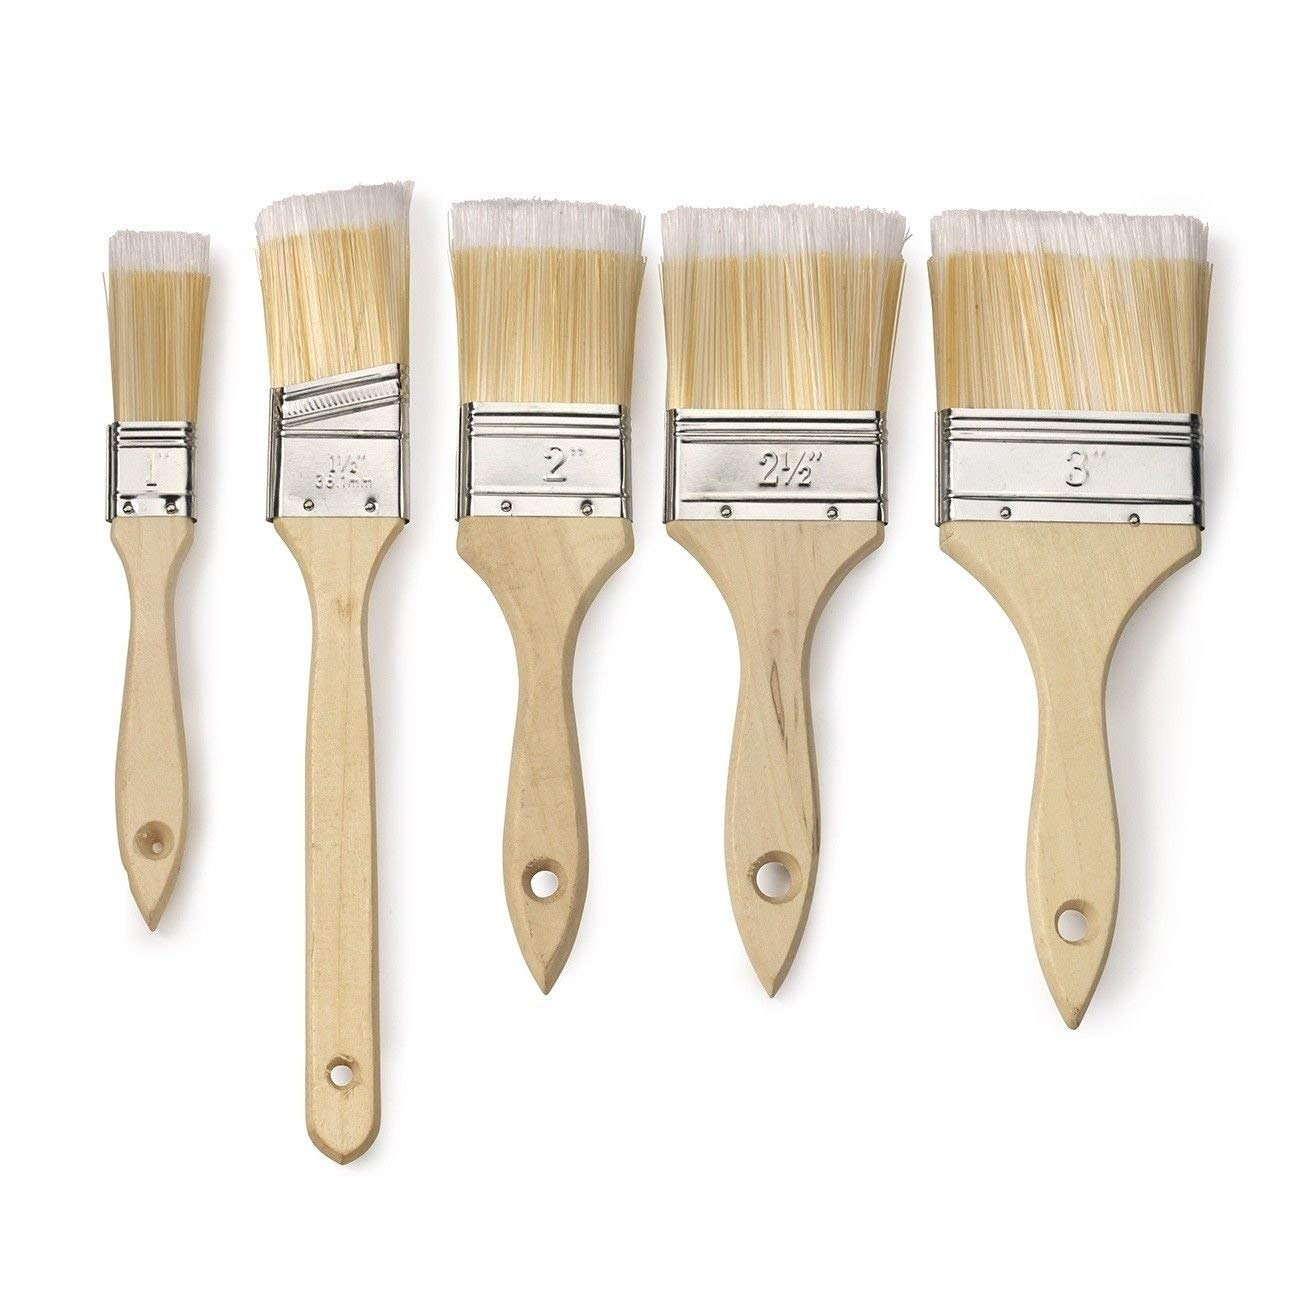 ESKALEX>>Paint Brush Set | 10pc Variety Pack Straight Wood Handle Soft Bristles Tip and 10 Paint Brushes Includes 5 of The Most Popular Widths for Versatility Polyester Bristles Sturdy Natural Wood